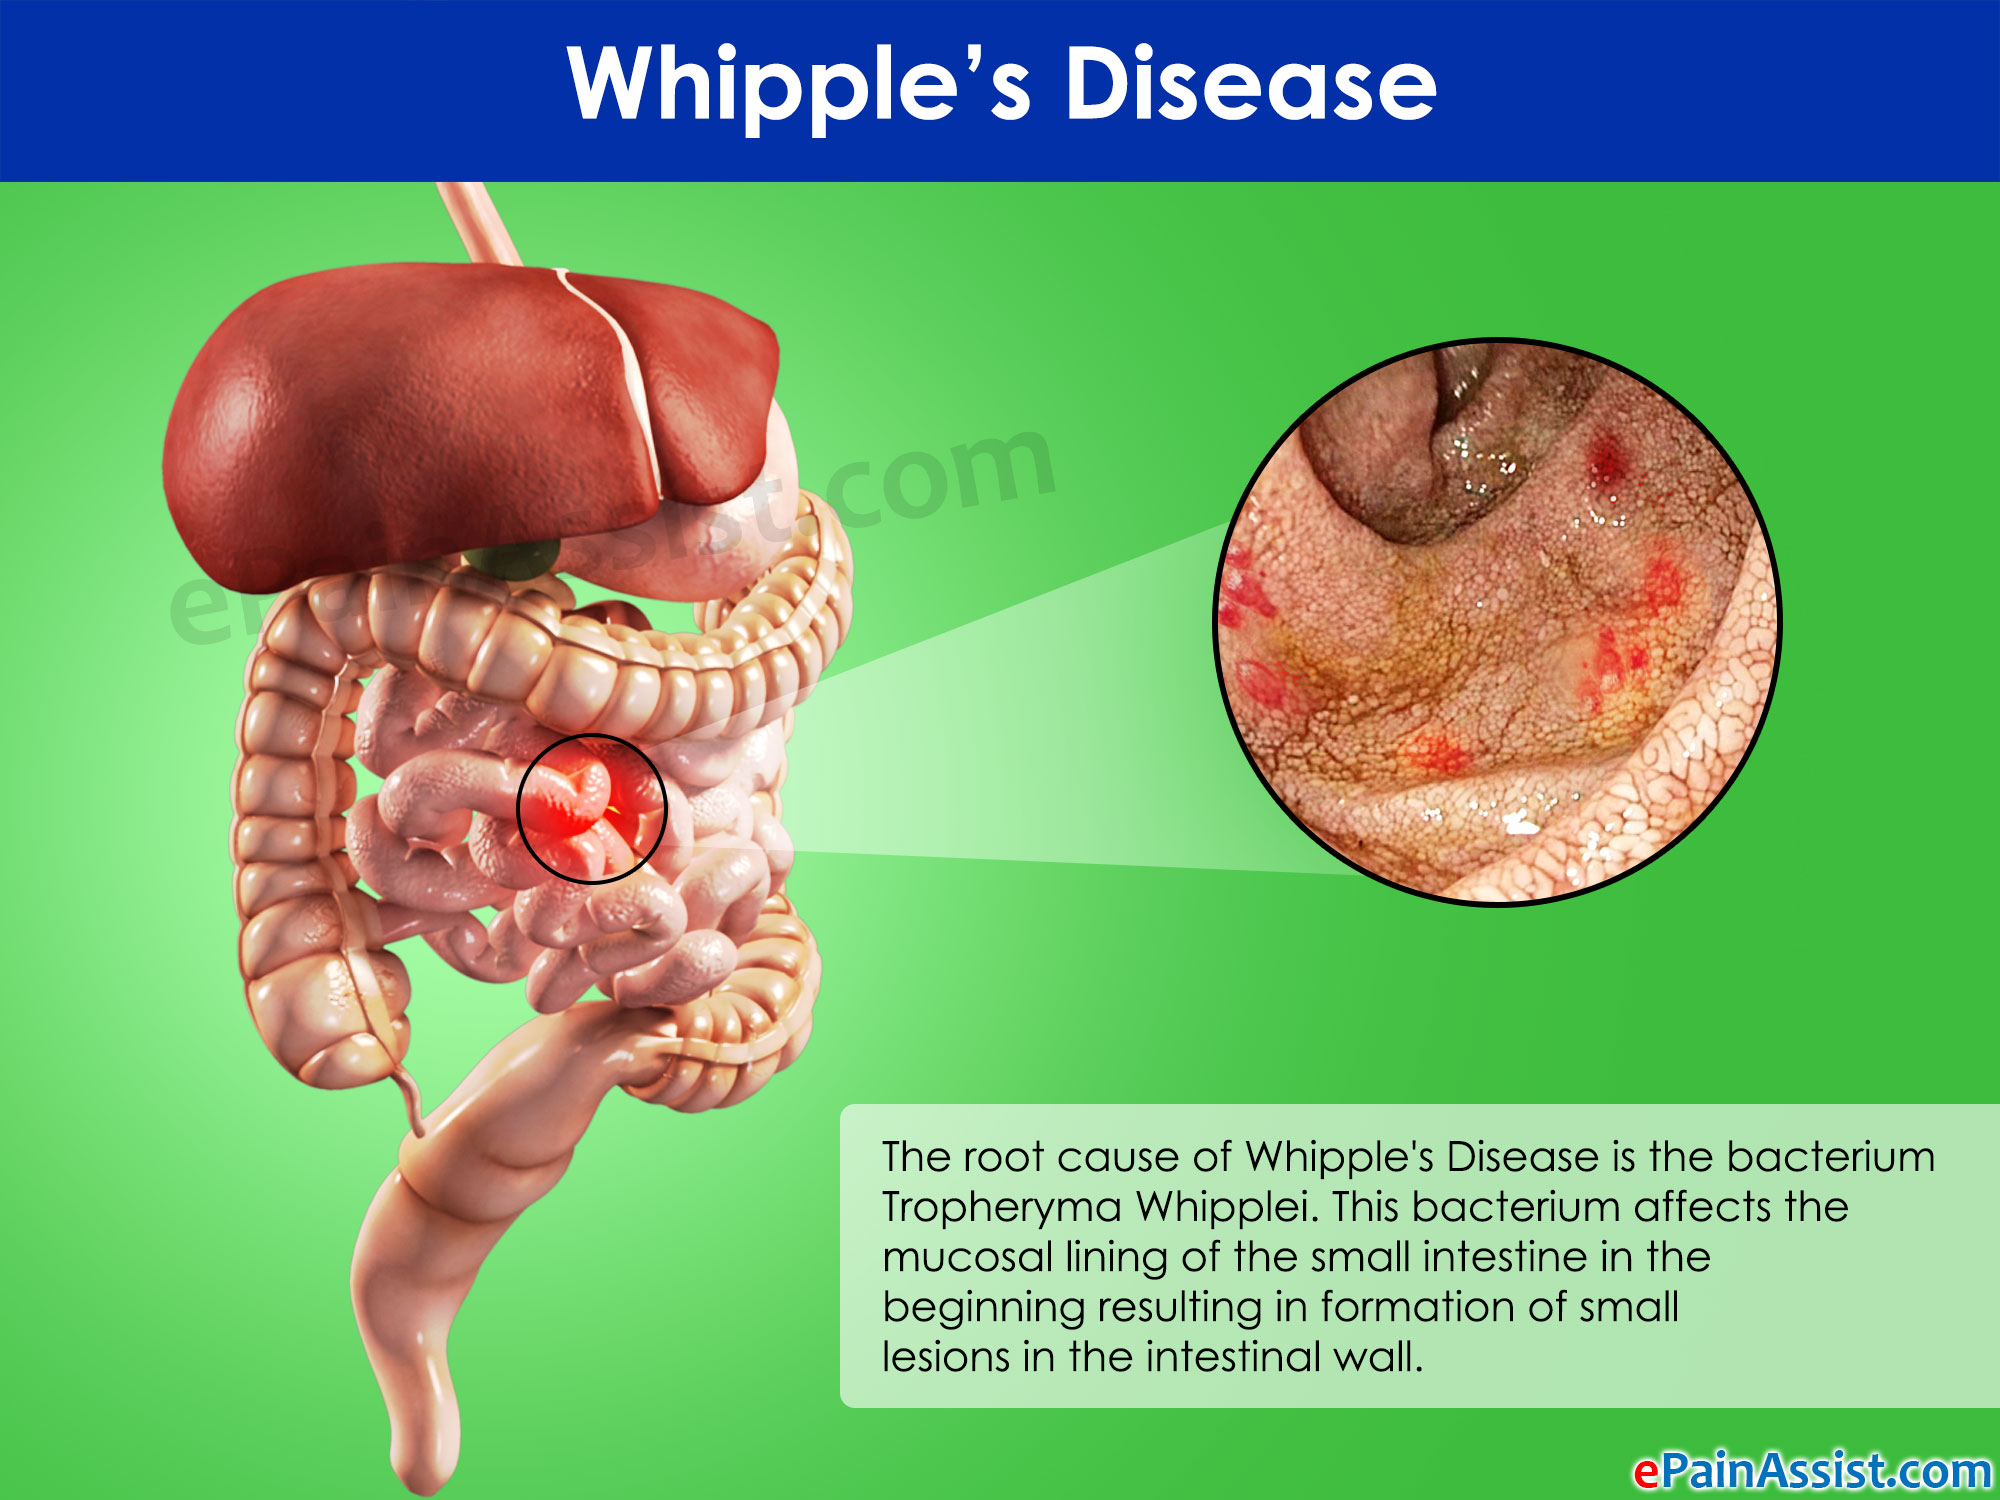 Symptoms and treatment of the disease